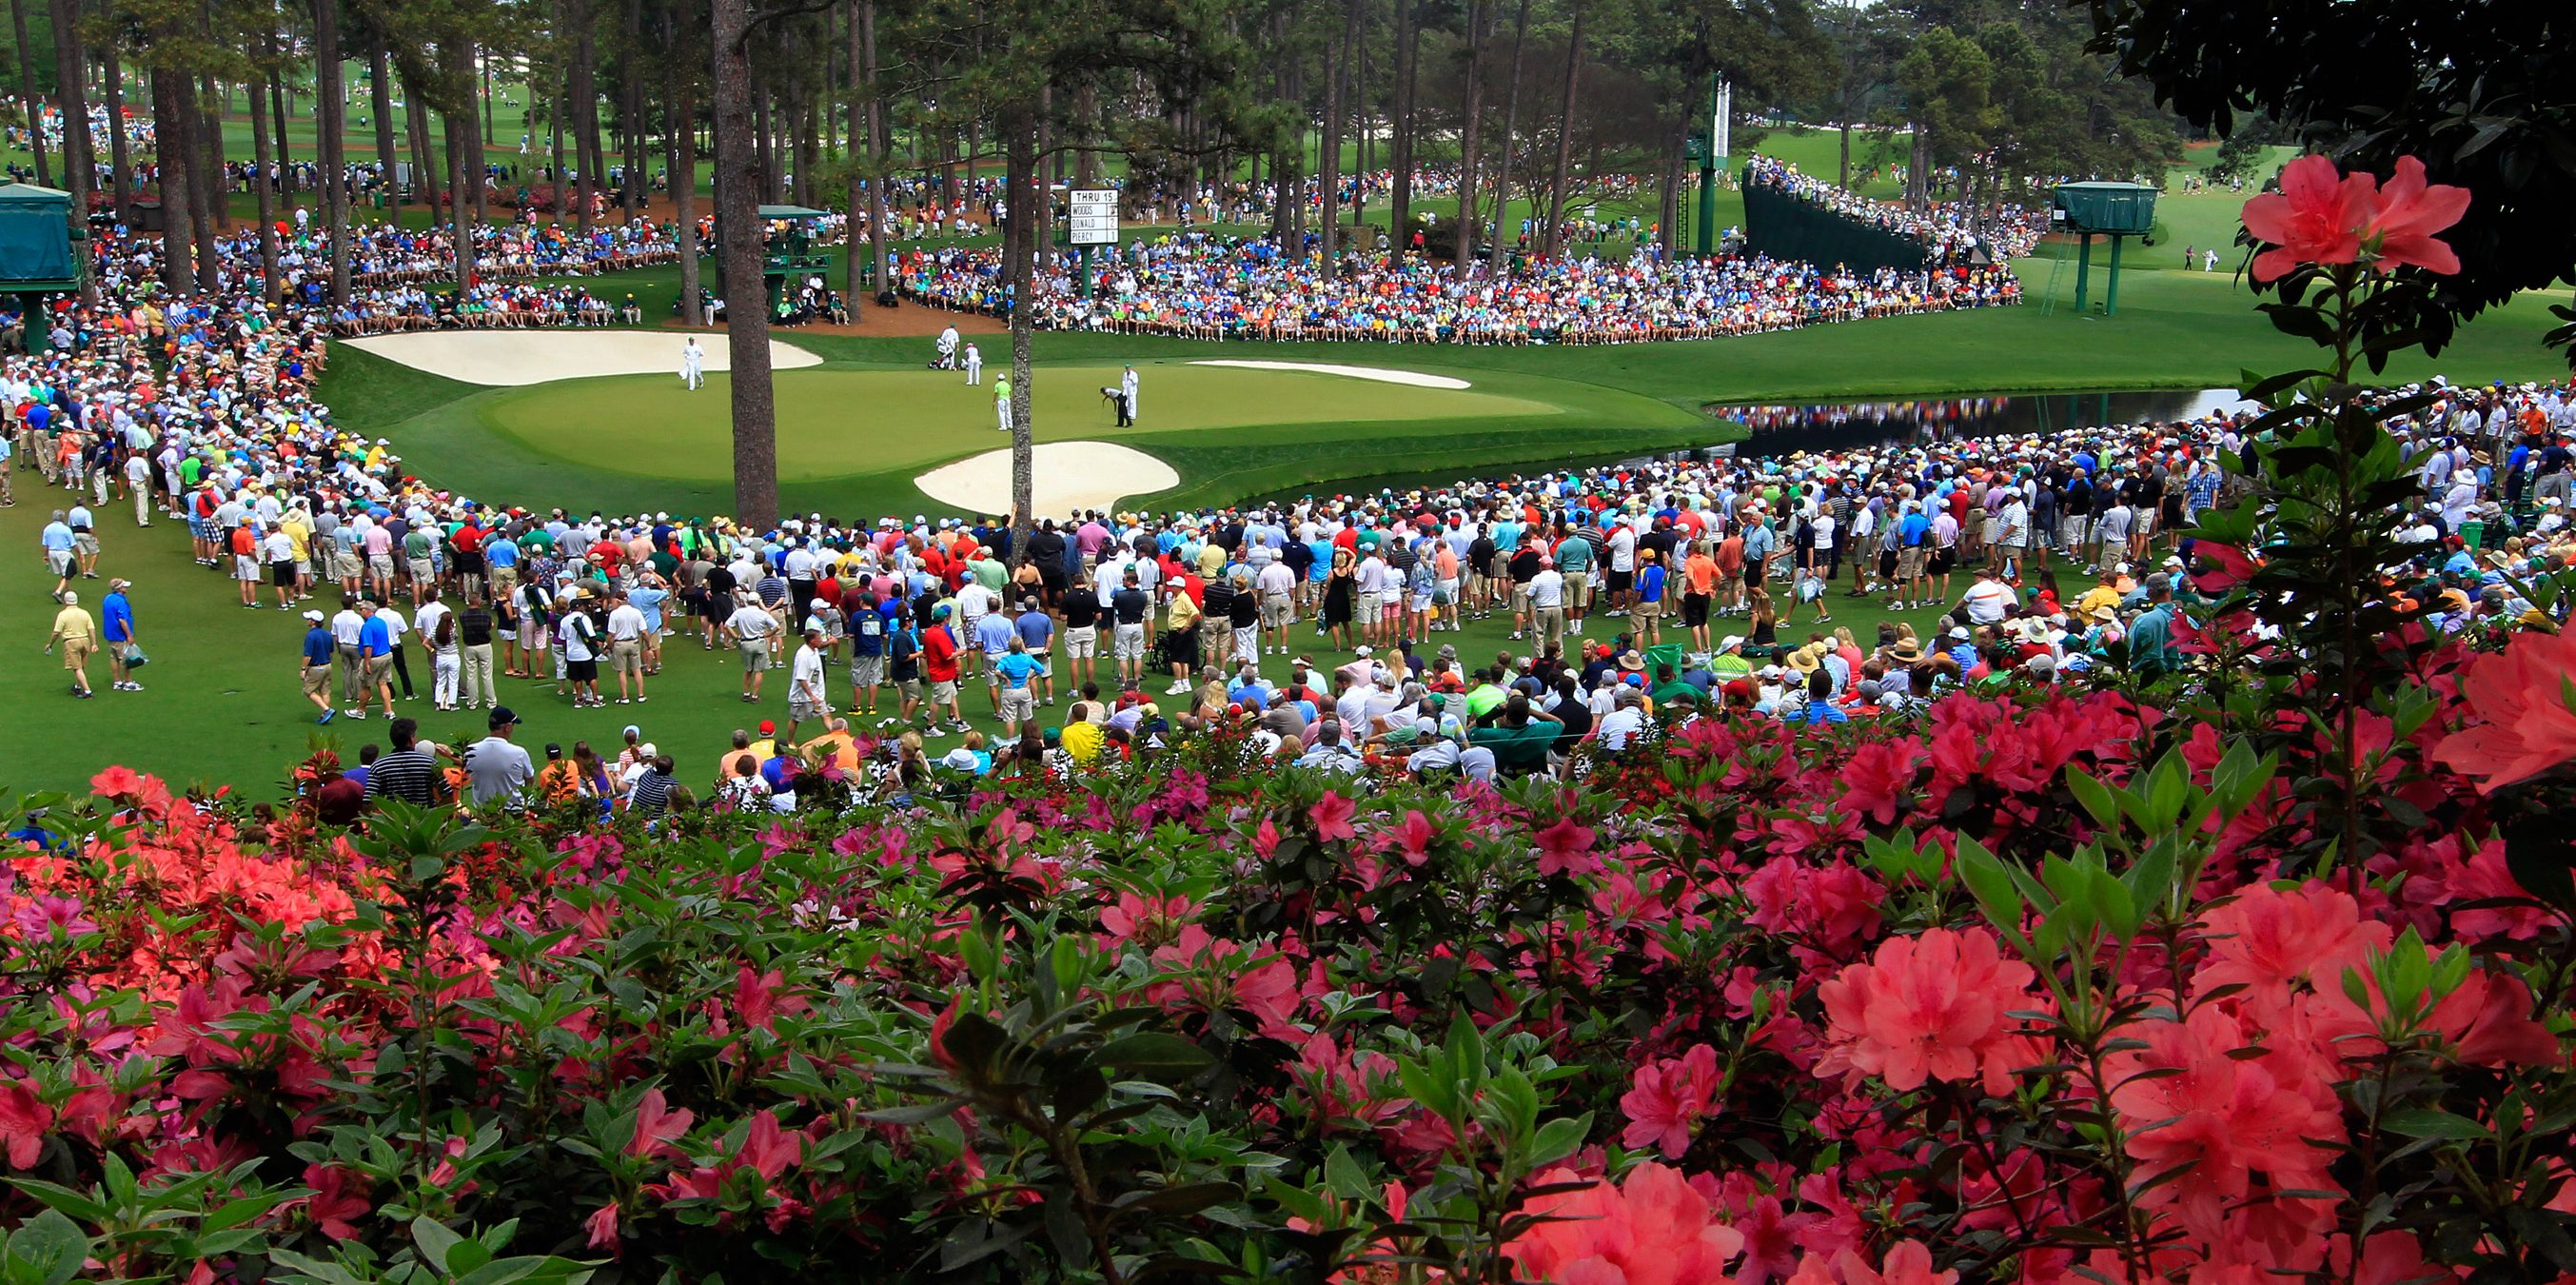 The azaleas were in full bloom overlooking the 16th green during the first round of the Masters at Augusta National Golf Club in Augusta, Georgia, Thursday, April 11, 2013. (Tim Dominick/The State/MCT via Getty Images)